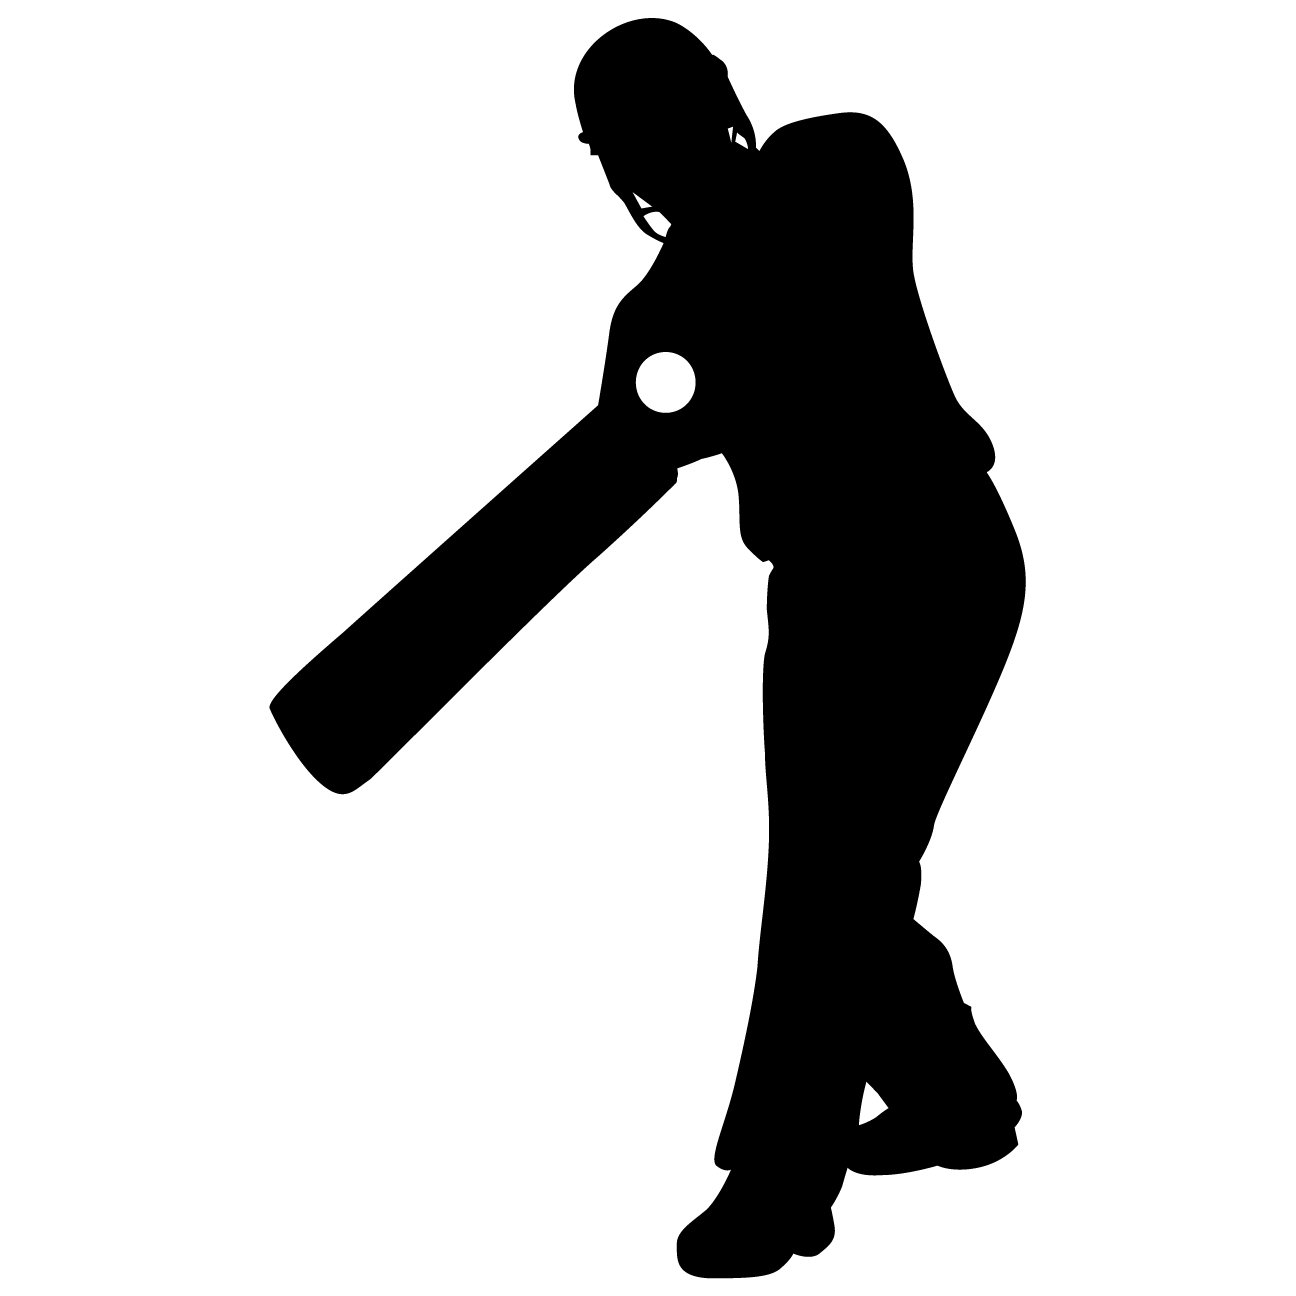 Cricket Wall Decal Sticker 2 - Decal Stickers and Mural for Kids Boys Girls Room and Bedroom. Cricket Ball Sport India Wall Art for Home Decor and Decoration - Cricket Silhouette Mural